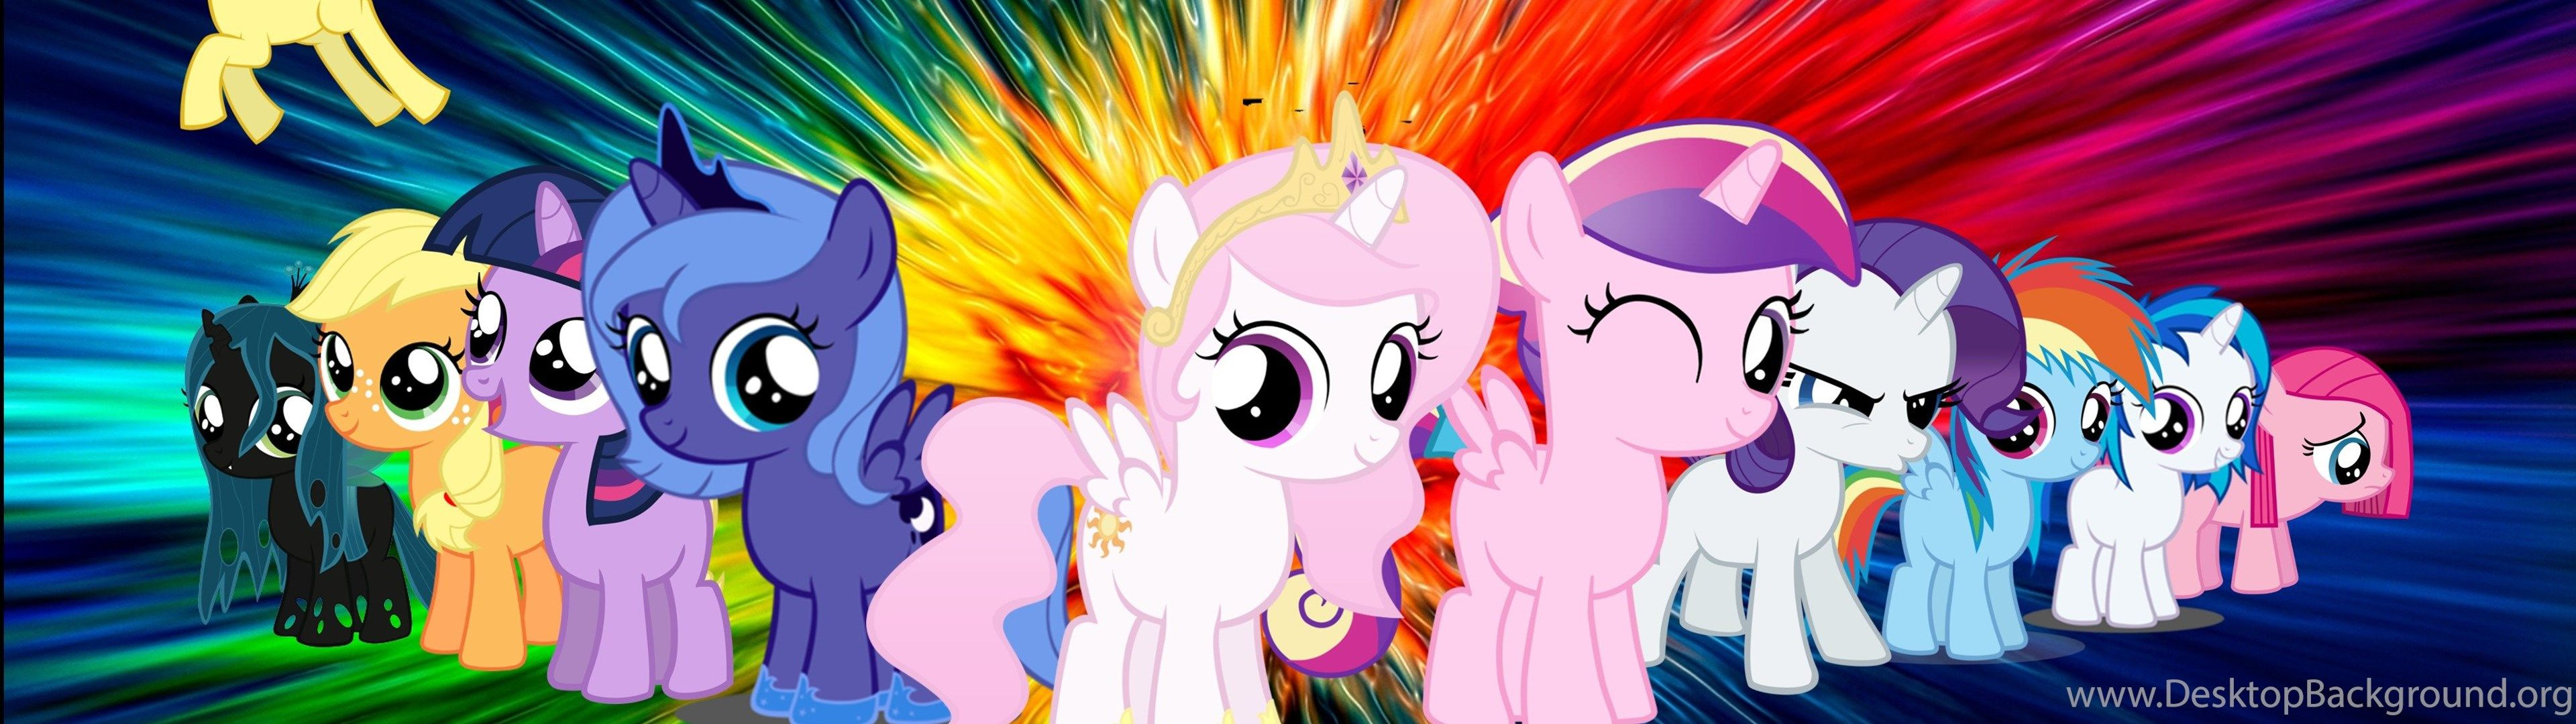 My Little Pony Dual Screen Wallpapers Top Free My Little Pony